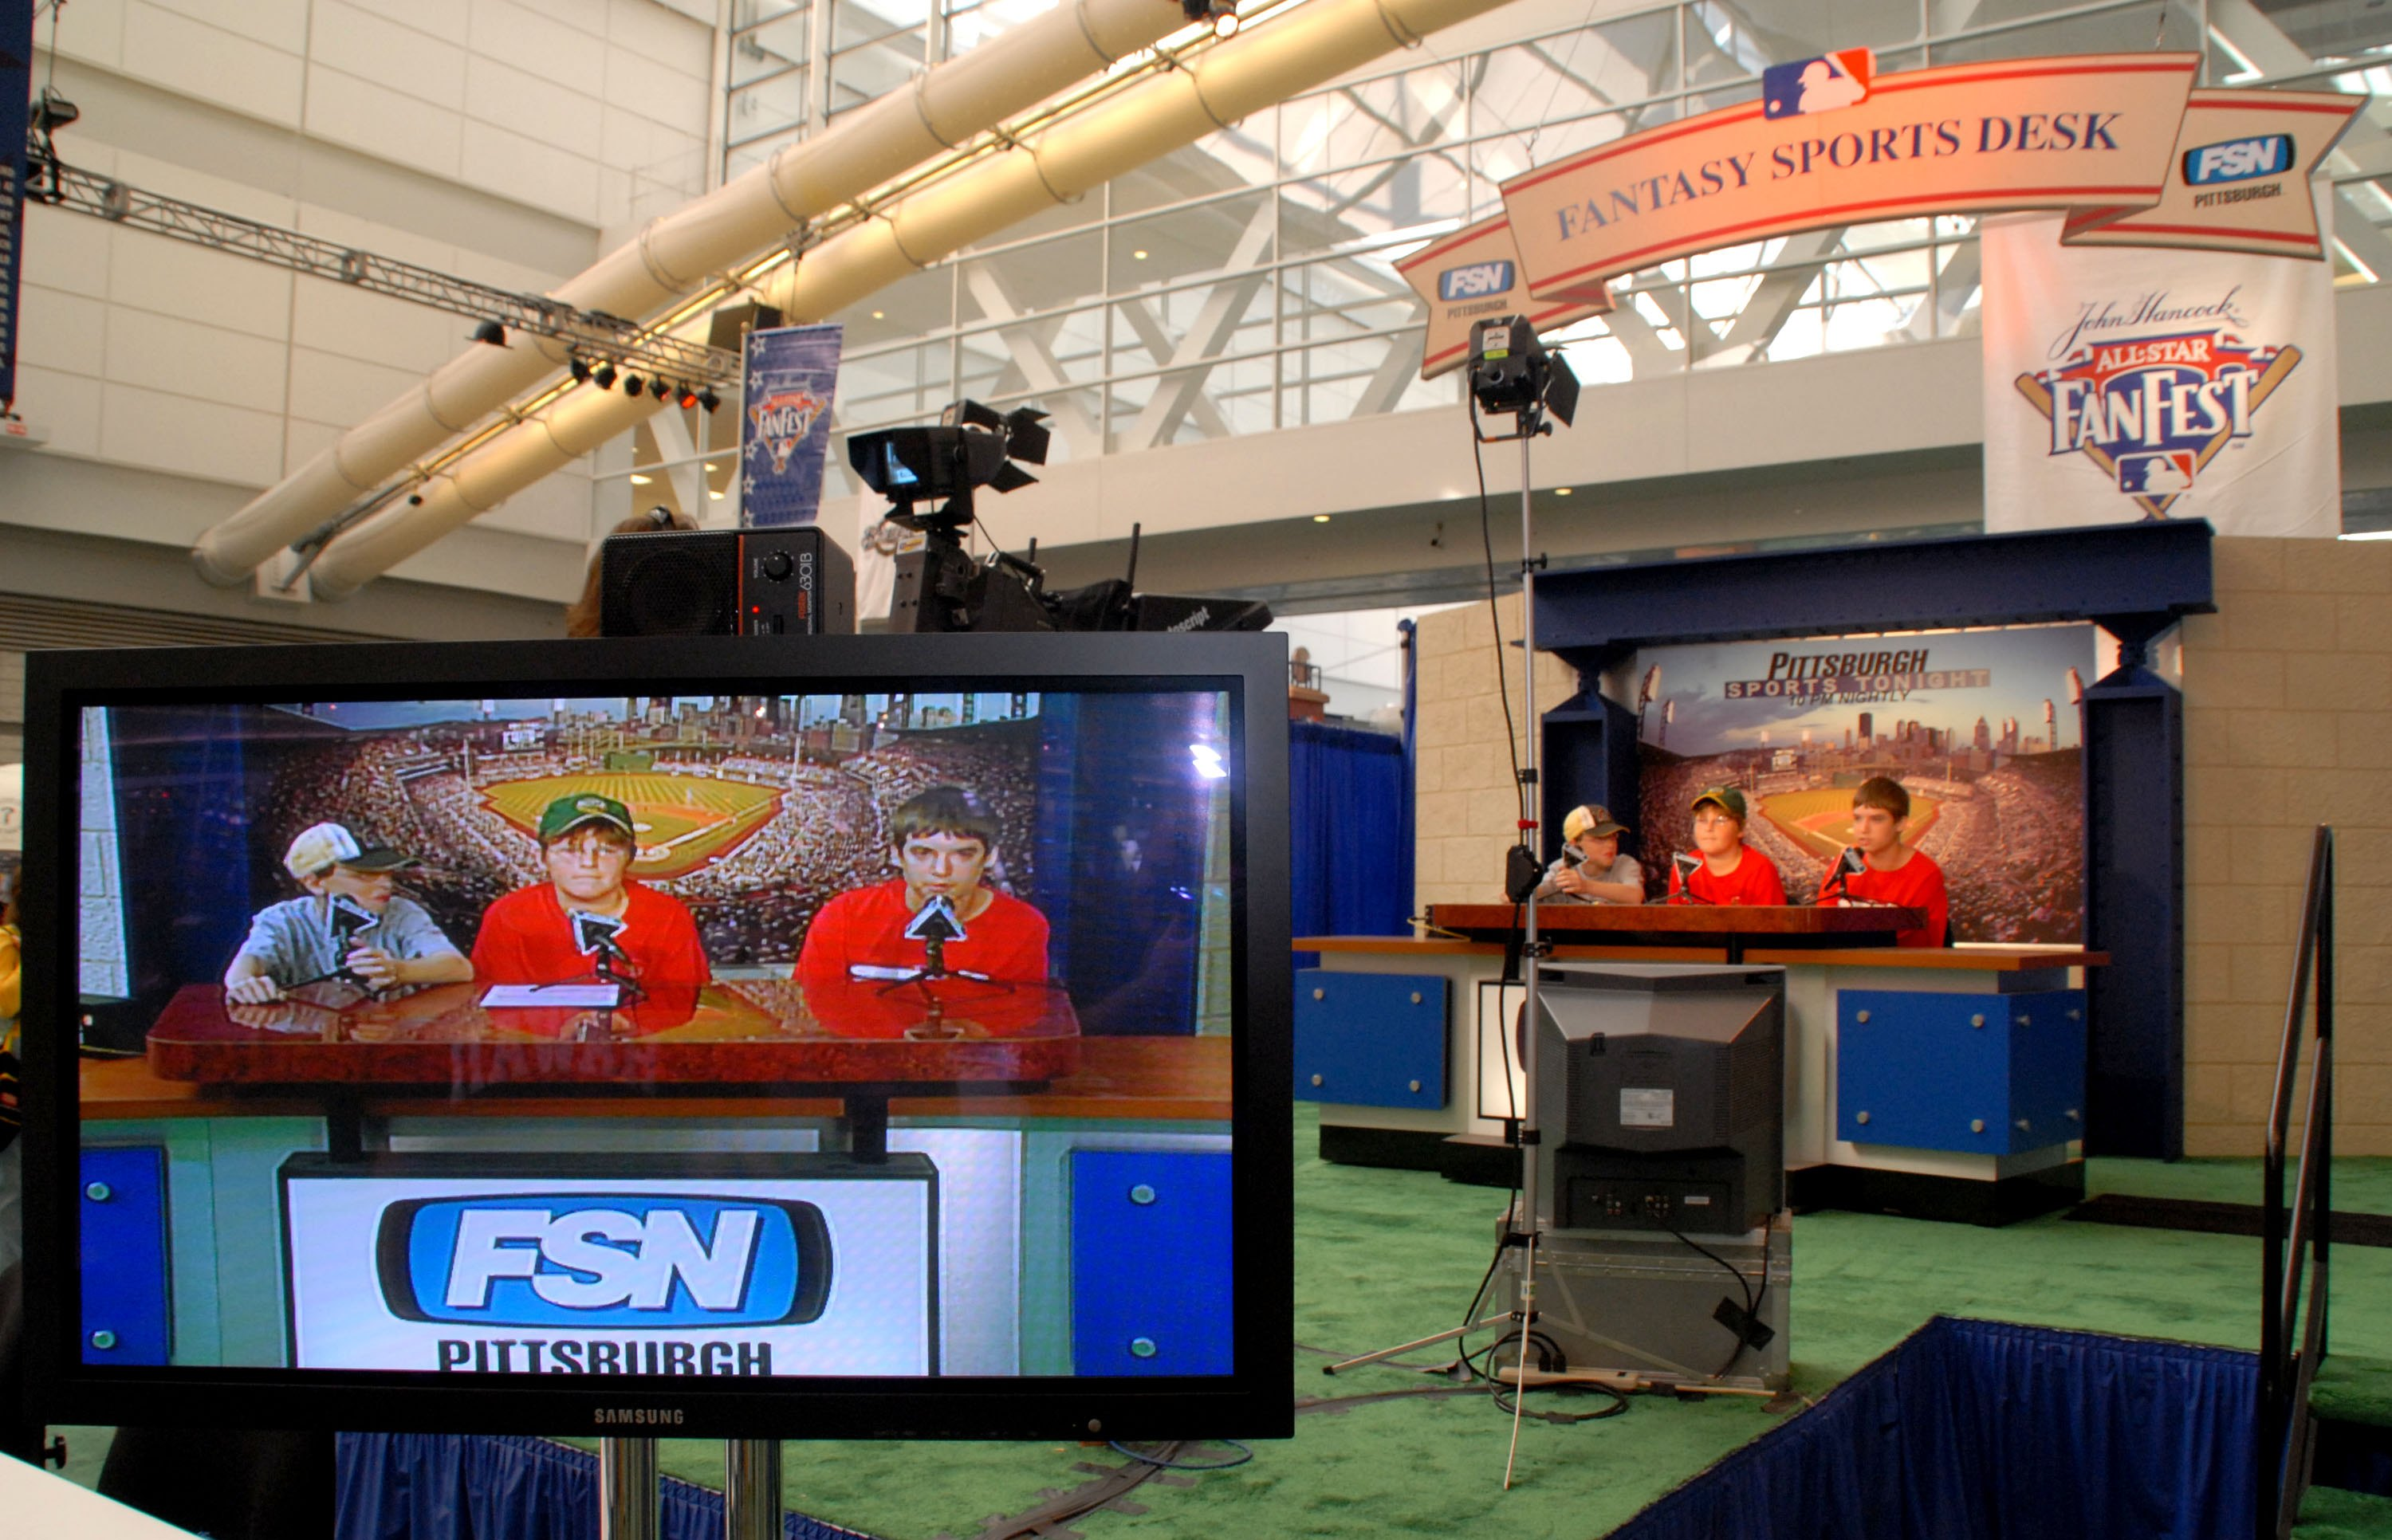 PITTSBURGH - JULY 7: (L-R) Fans Michael Kutilek, 12, Griffin Conley, 11, and Brody Smith, 13, of Oakmont, Pennsylvania, participate in a fantasy sports broadcast during the opening day of Fan Fest for the Major League Baseball 2006 All-Star game at the Da